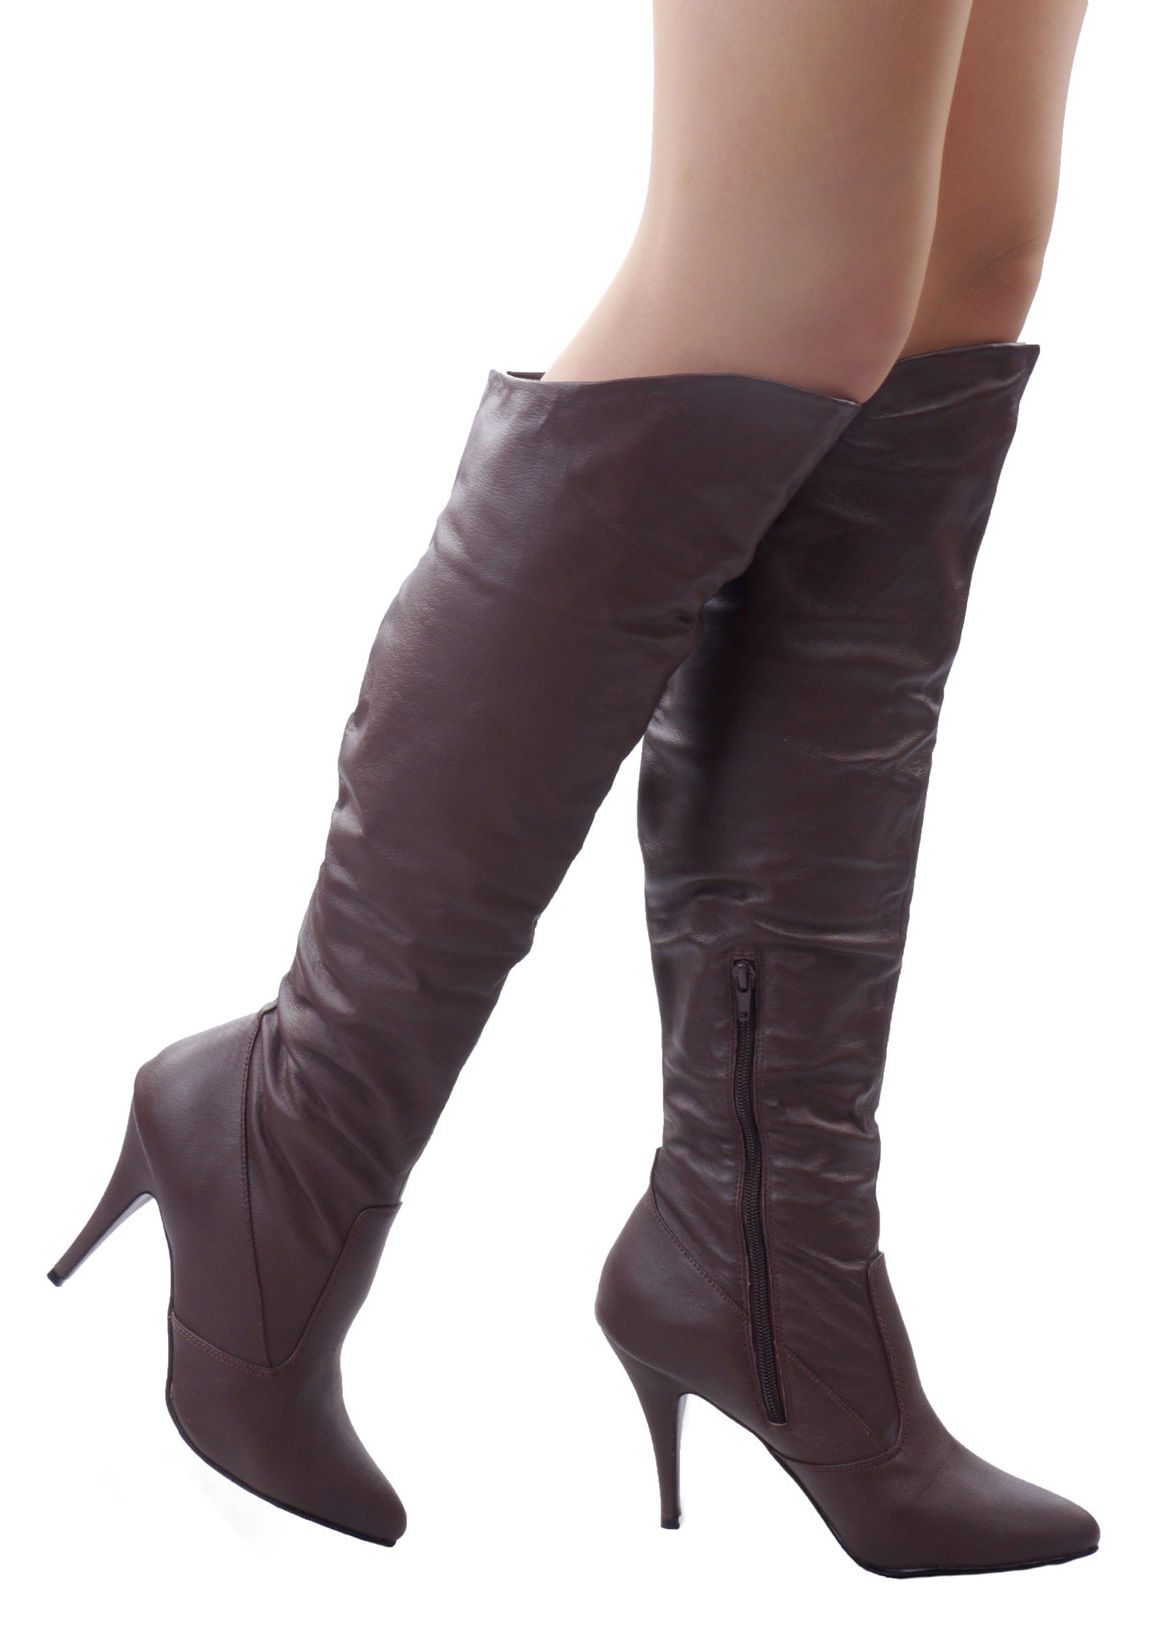 pleaser vanity 2013 s 4 inch heel knee high cuffed